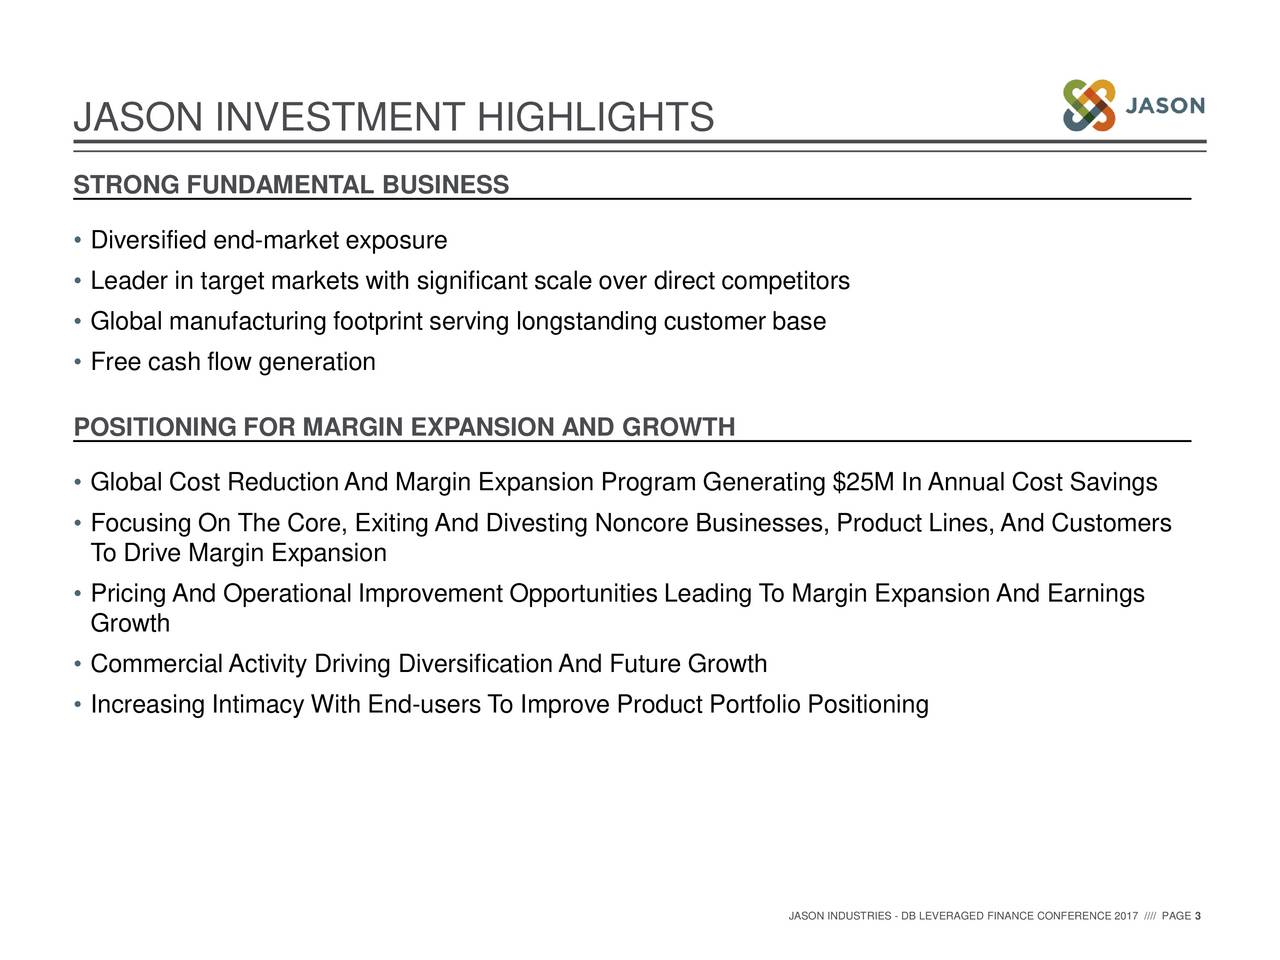 STRONG FUNDAMENTAL BUSINESS • Diversified end-market exposure • Leader in target markets with significant scale over direct competitors • Global manufacturing footprint serving longstanding customer base • Free cash flow generation POSITIONING FOR MARGIN EXPANSION AND GROWTH • Global Cost ReductionAnd Margin Expansion Program Generating $25M In Annual Cost Savings • Focusing On The Core, Exiting And Divesting Noncore Businesses, Product Lines, And Customers To Drive Margin Expansion • Pricing And Operational Improvement Opportunities Leading To Margin Expansion And Earnings Growth • Commercial Activity Driving DiversificationAnd Future Growth • Increasing Intimacy With End-users To Improve Product Portfolio Positioning JASON INDUSTRIES - DB LEVERAGED FINANCE CONFERENCE 2017 //// PAGE 3